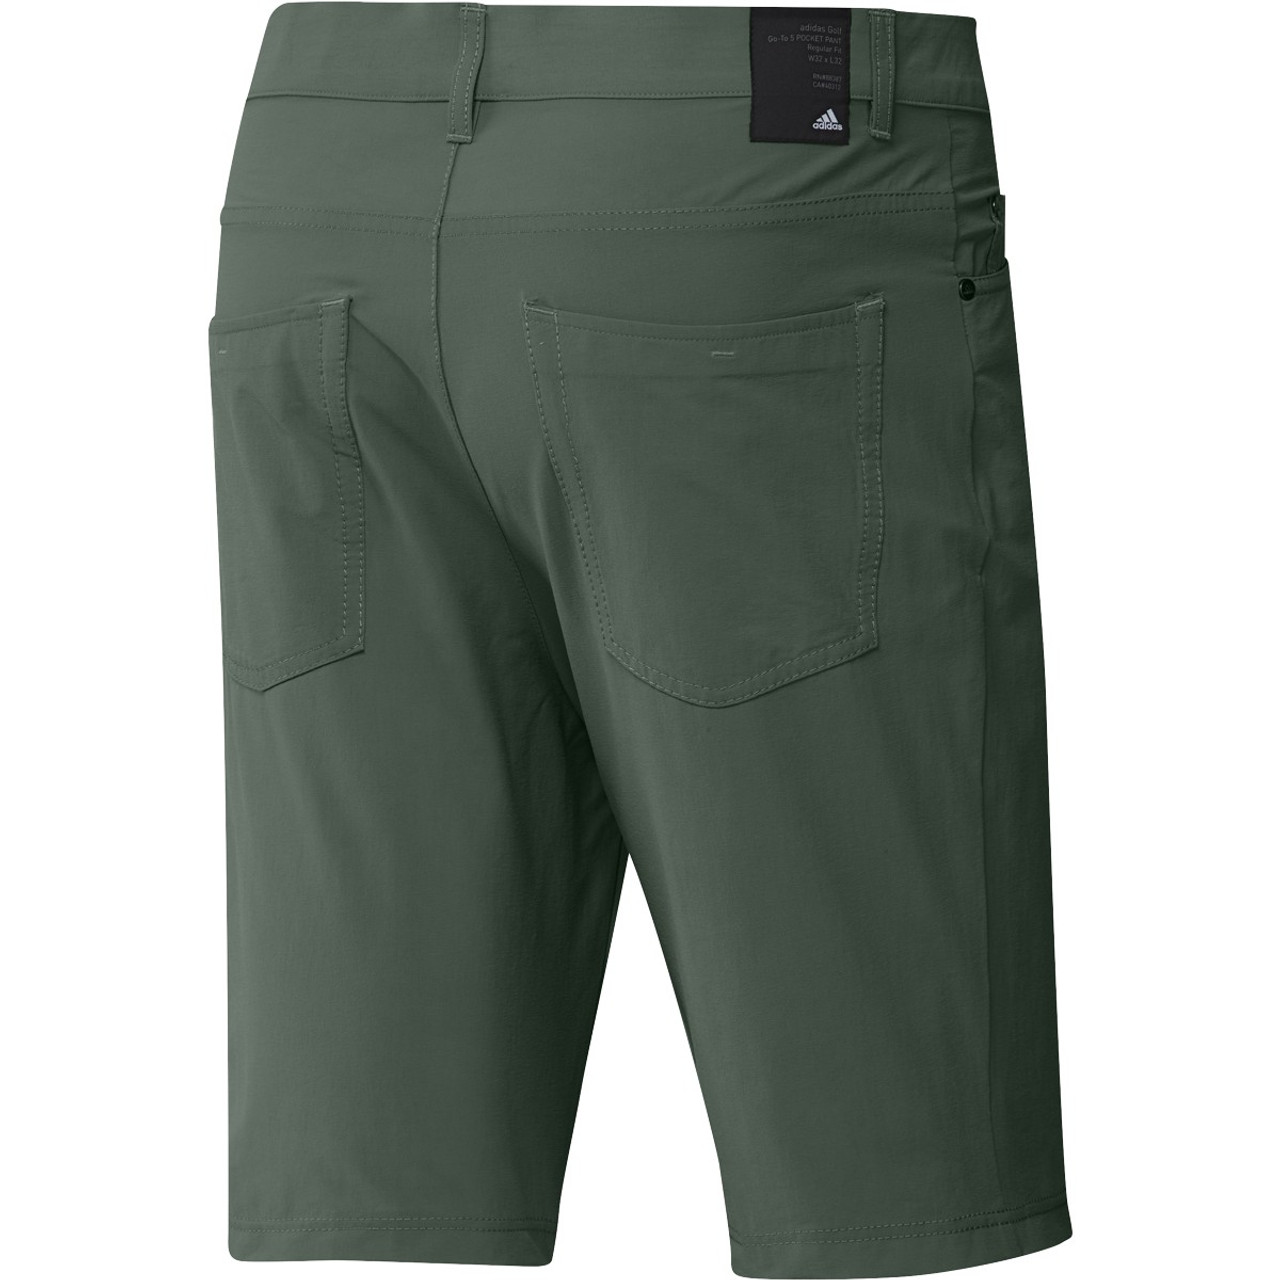 """Adidas GO-TO Five Pocket 10"""" Shorts - Green Oxide"""